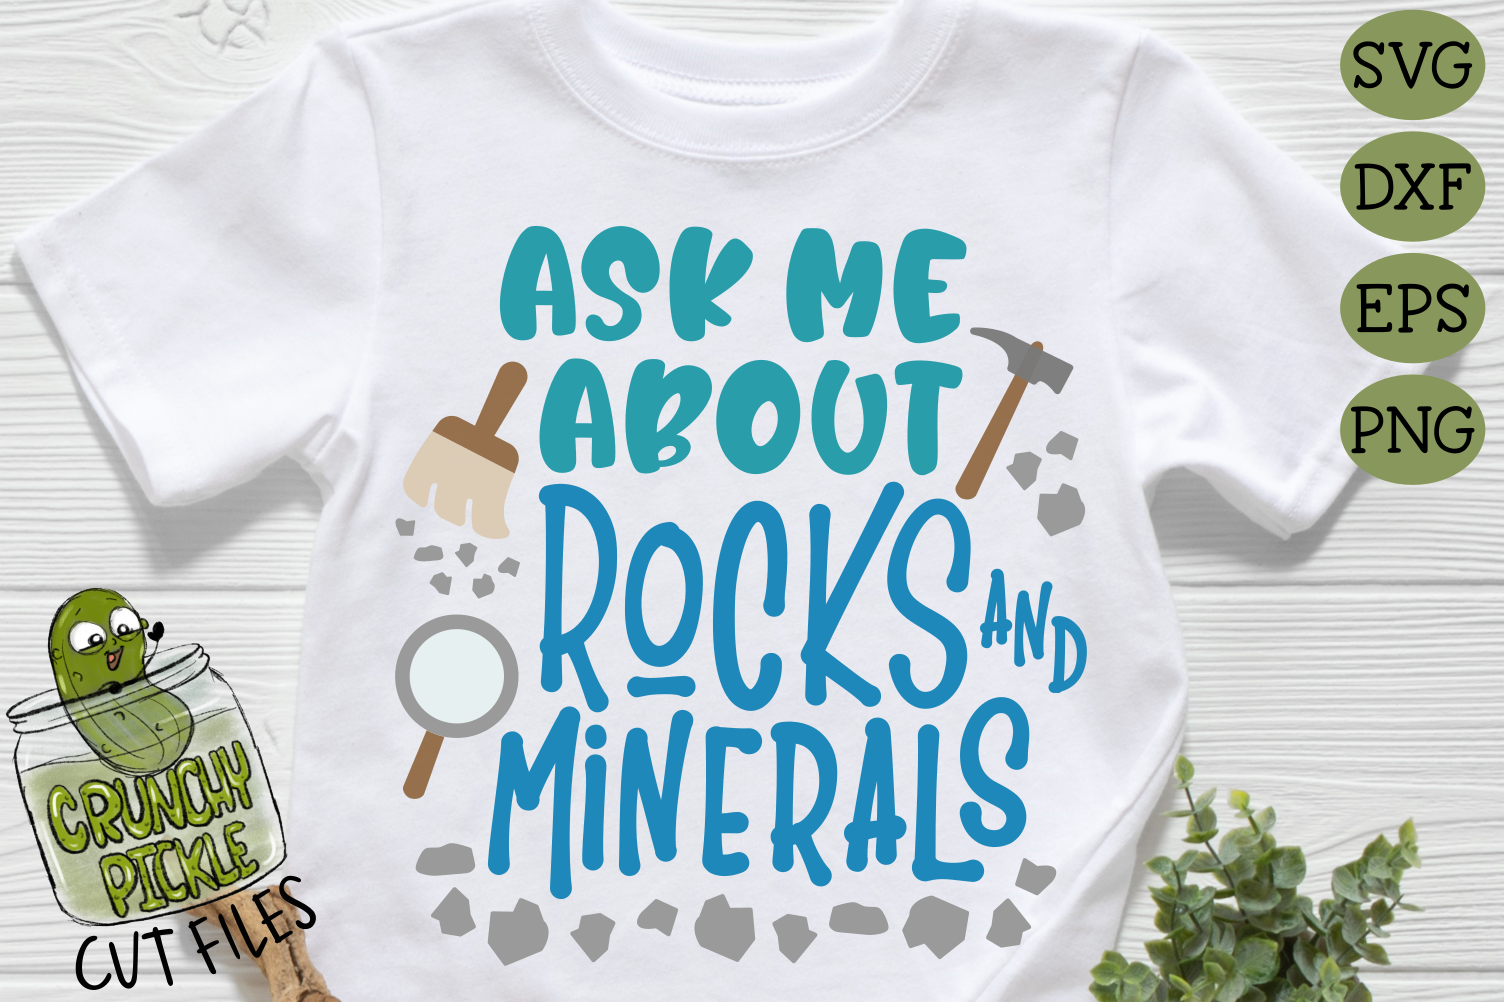 Ask Me About Rocks and Minerals SVG example image 3